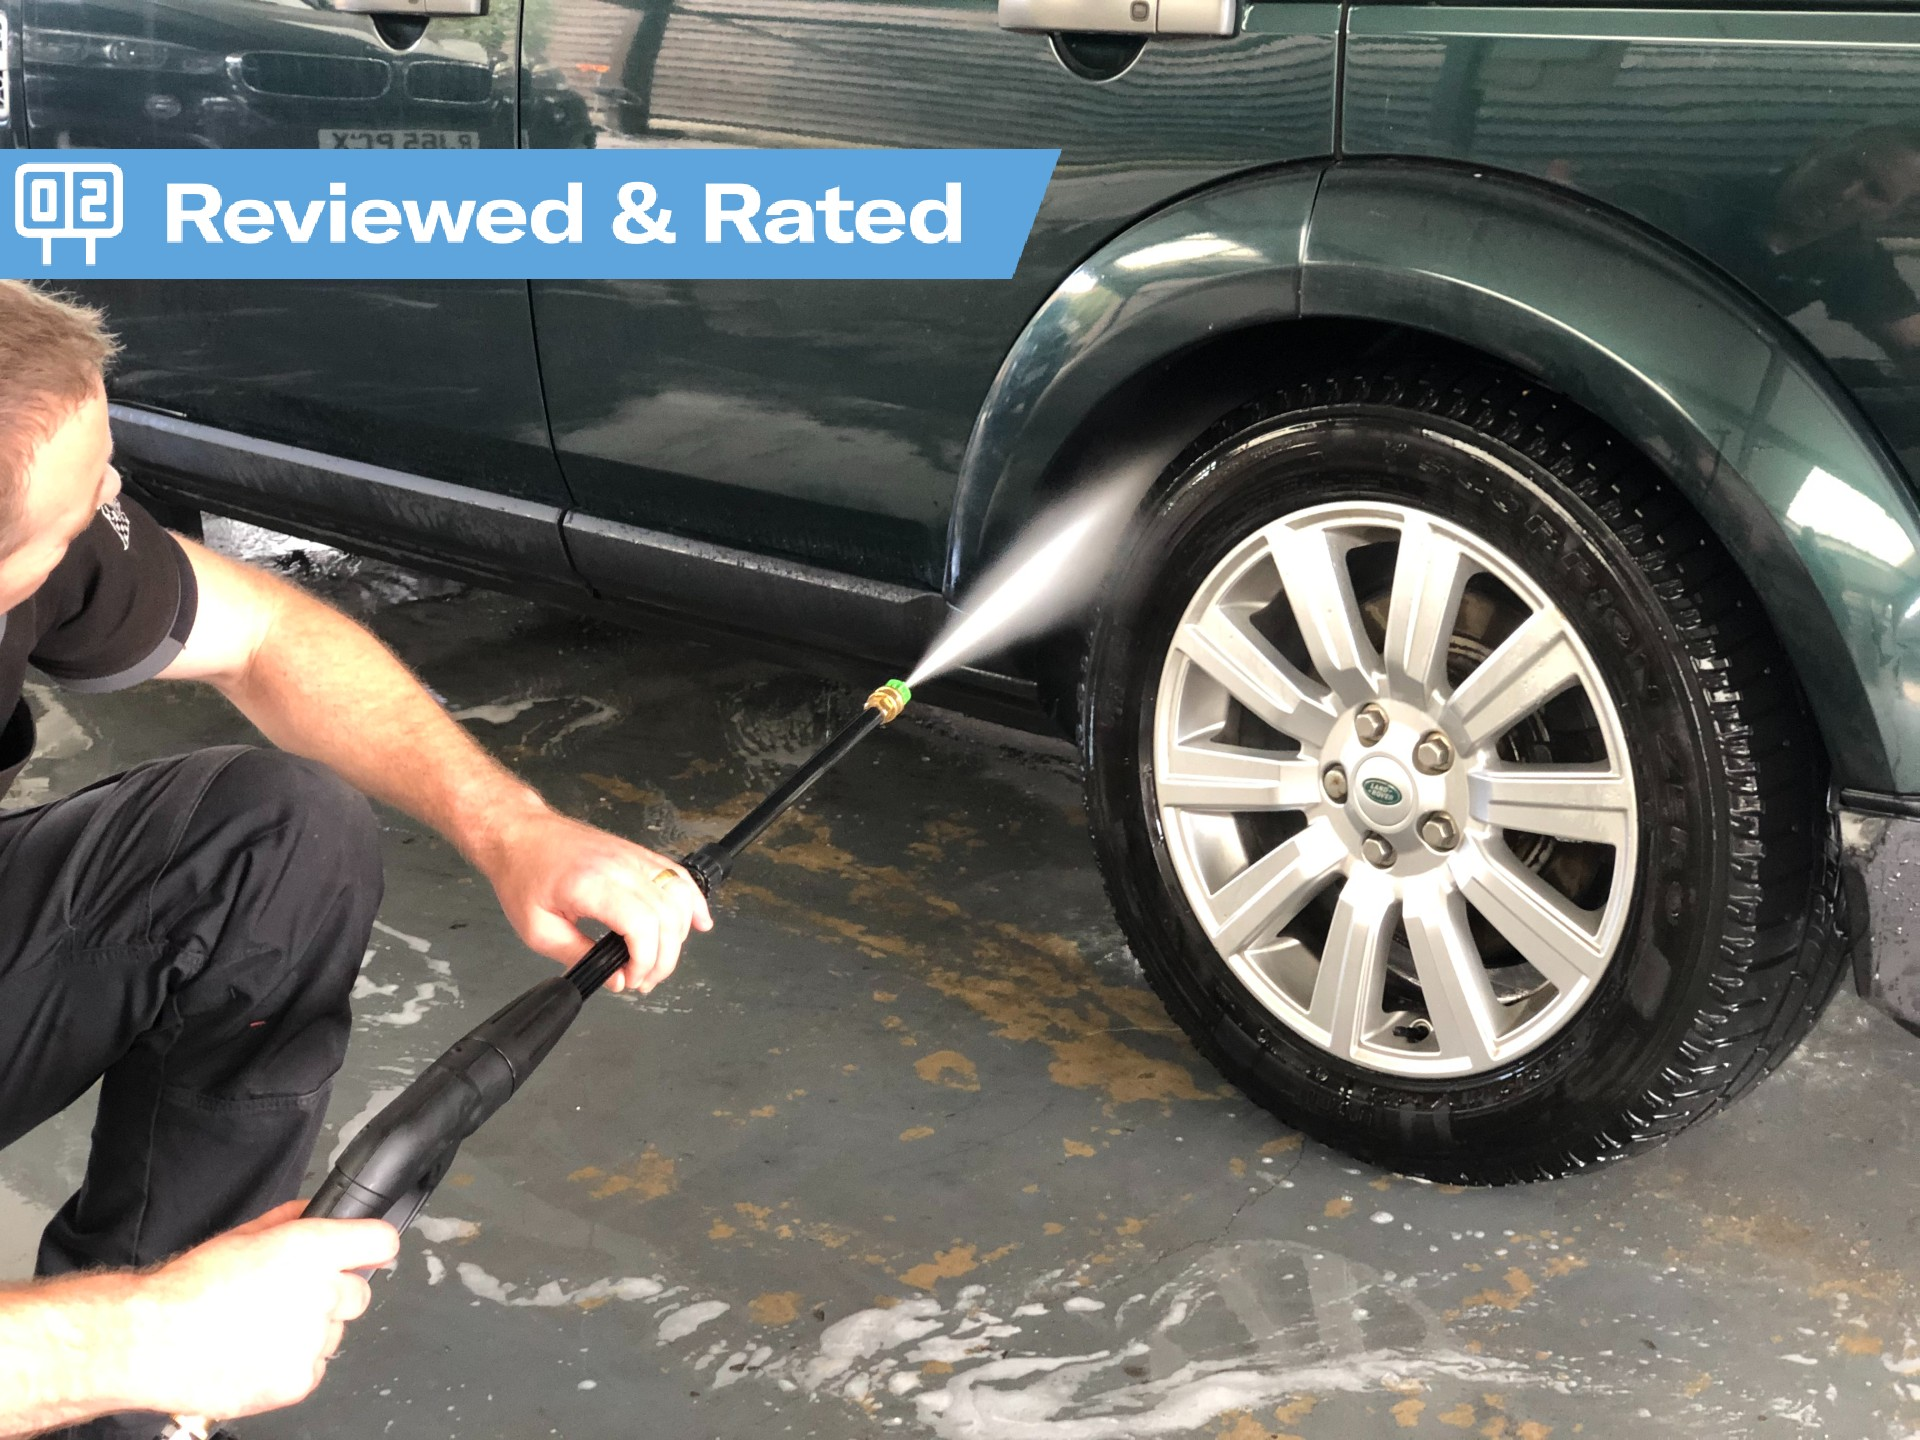 Reviewed & Rated: The dirt on the latest pressure washers